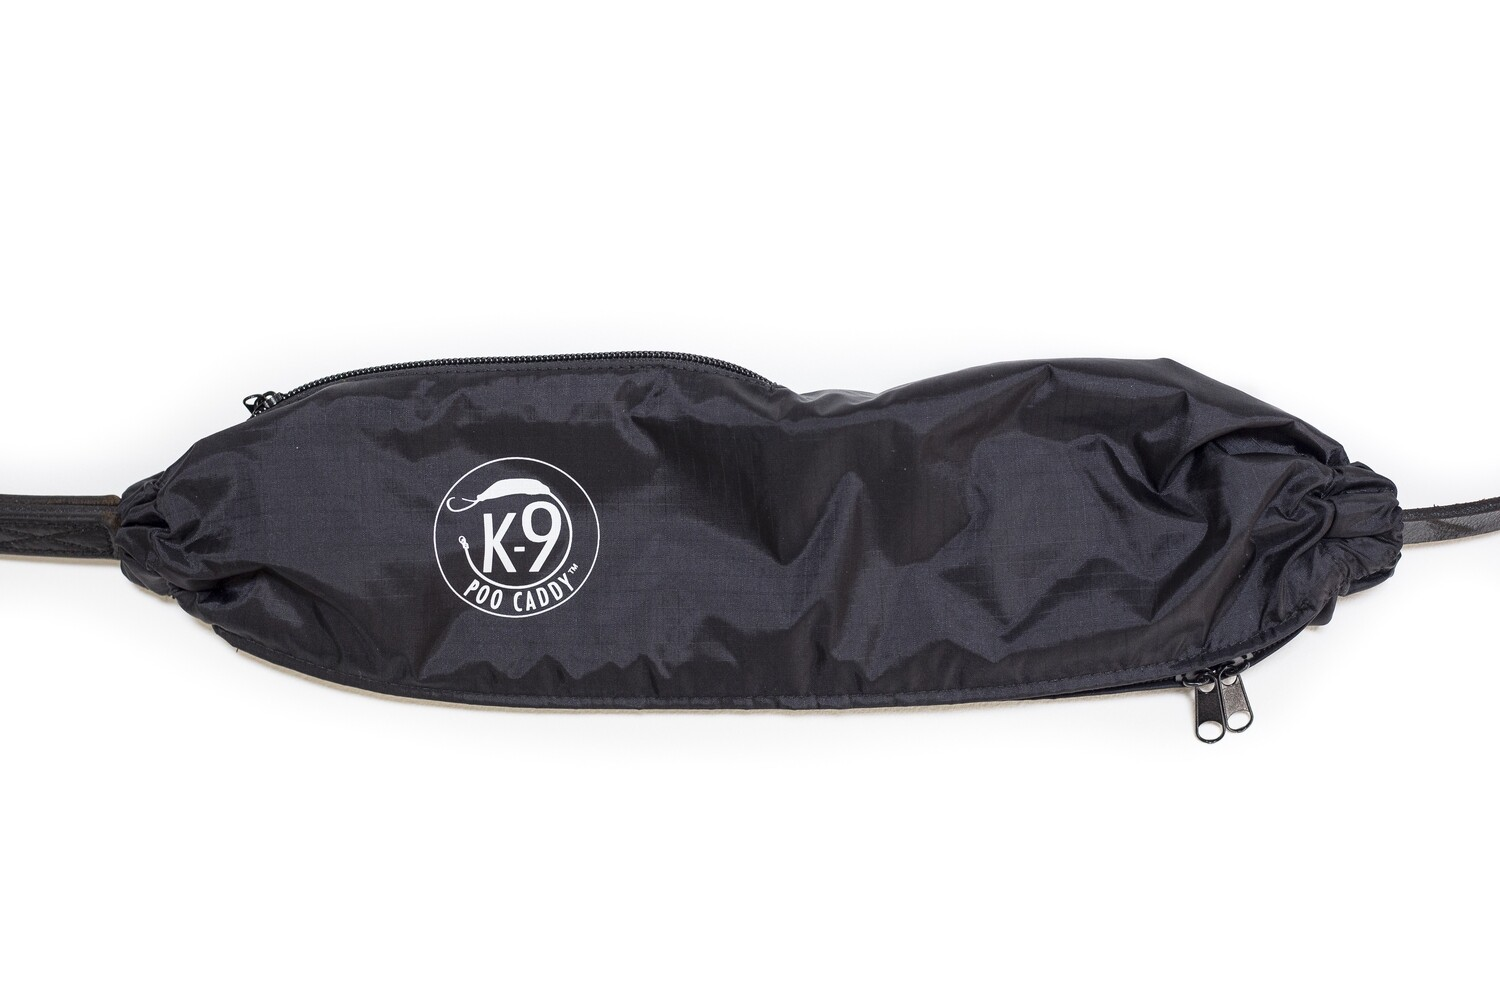 K-9 Poo Caddy:   See product photos